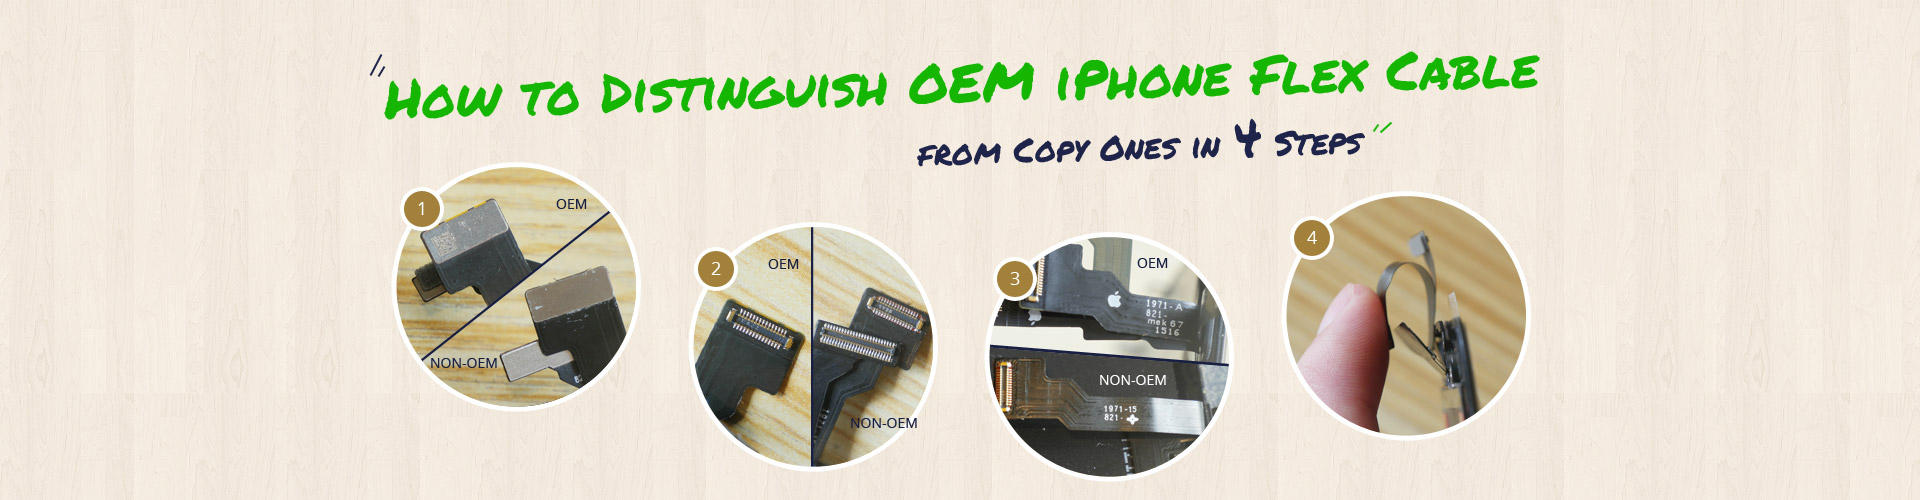 How to Distinguish OEM iPhone Flex Cable from Copy Ones in 4 Steps